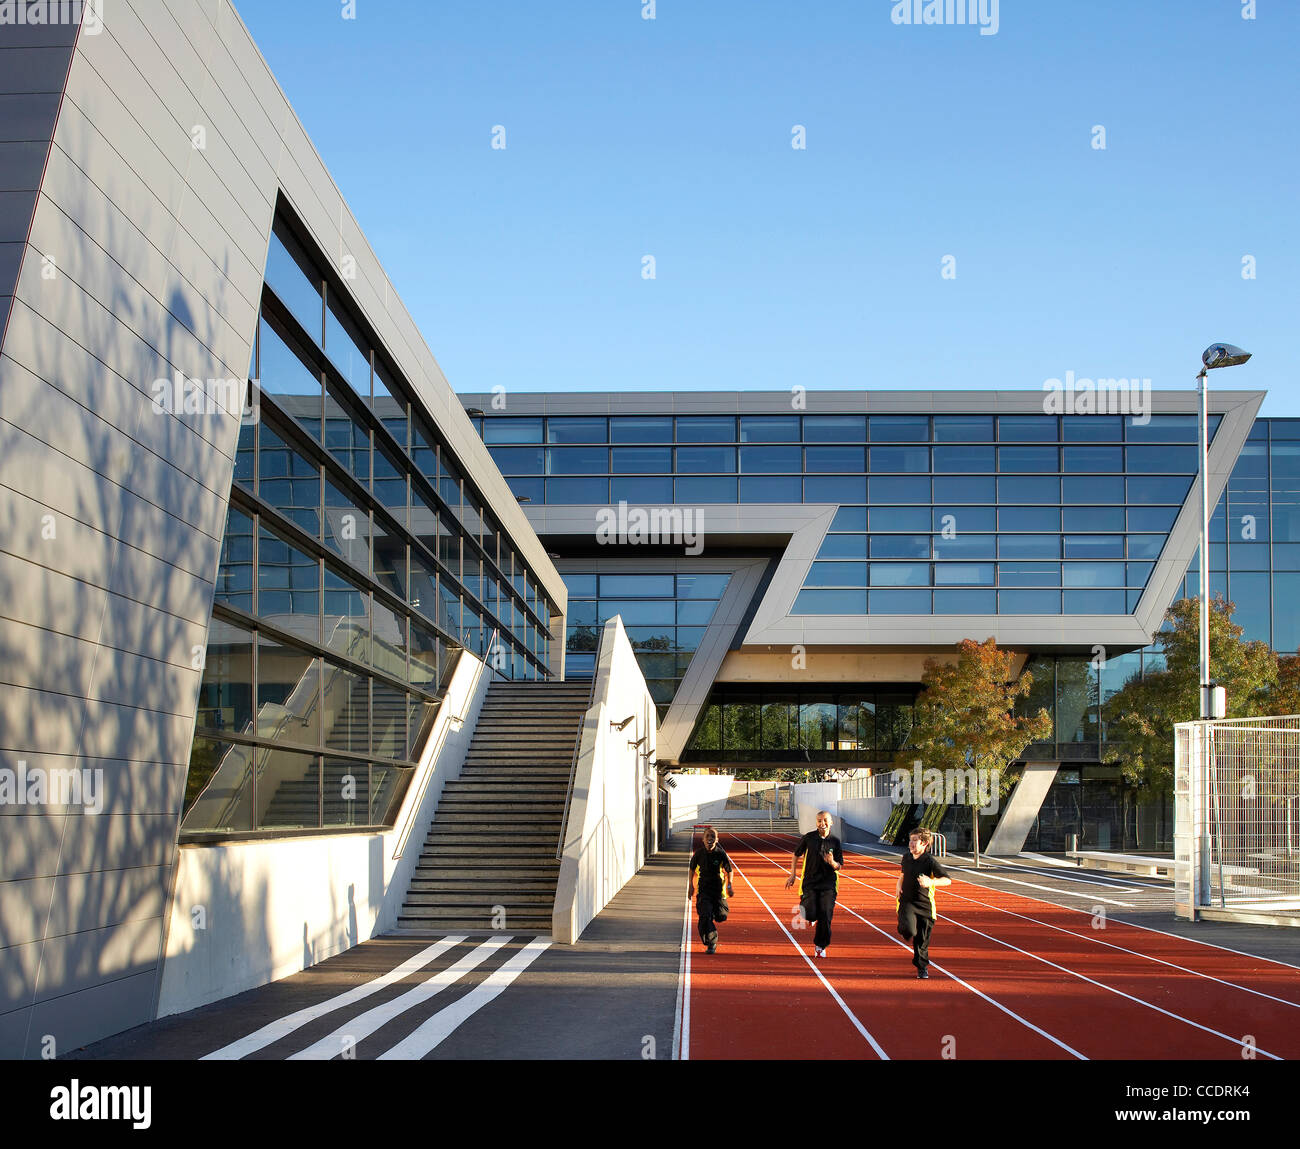 EVELYN GRACE ACADEMY, ZAHA HADID ARCHITECTS, LONDON, 2010, EXTERIOR WITH PUPILS RUNNING ON TRACK Stock Photo